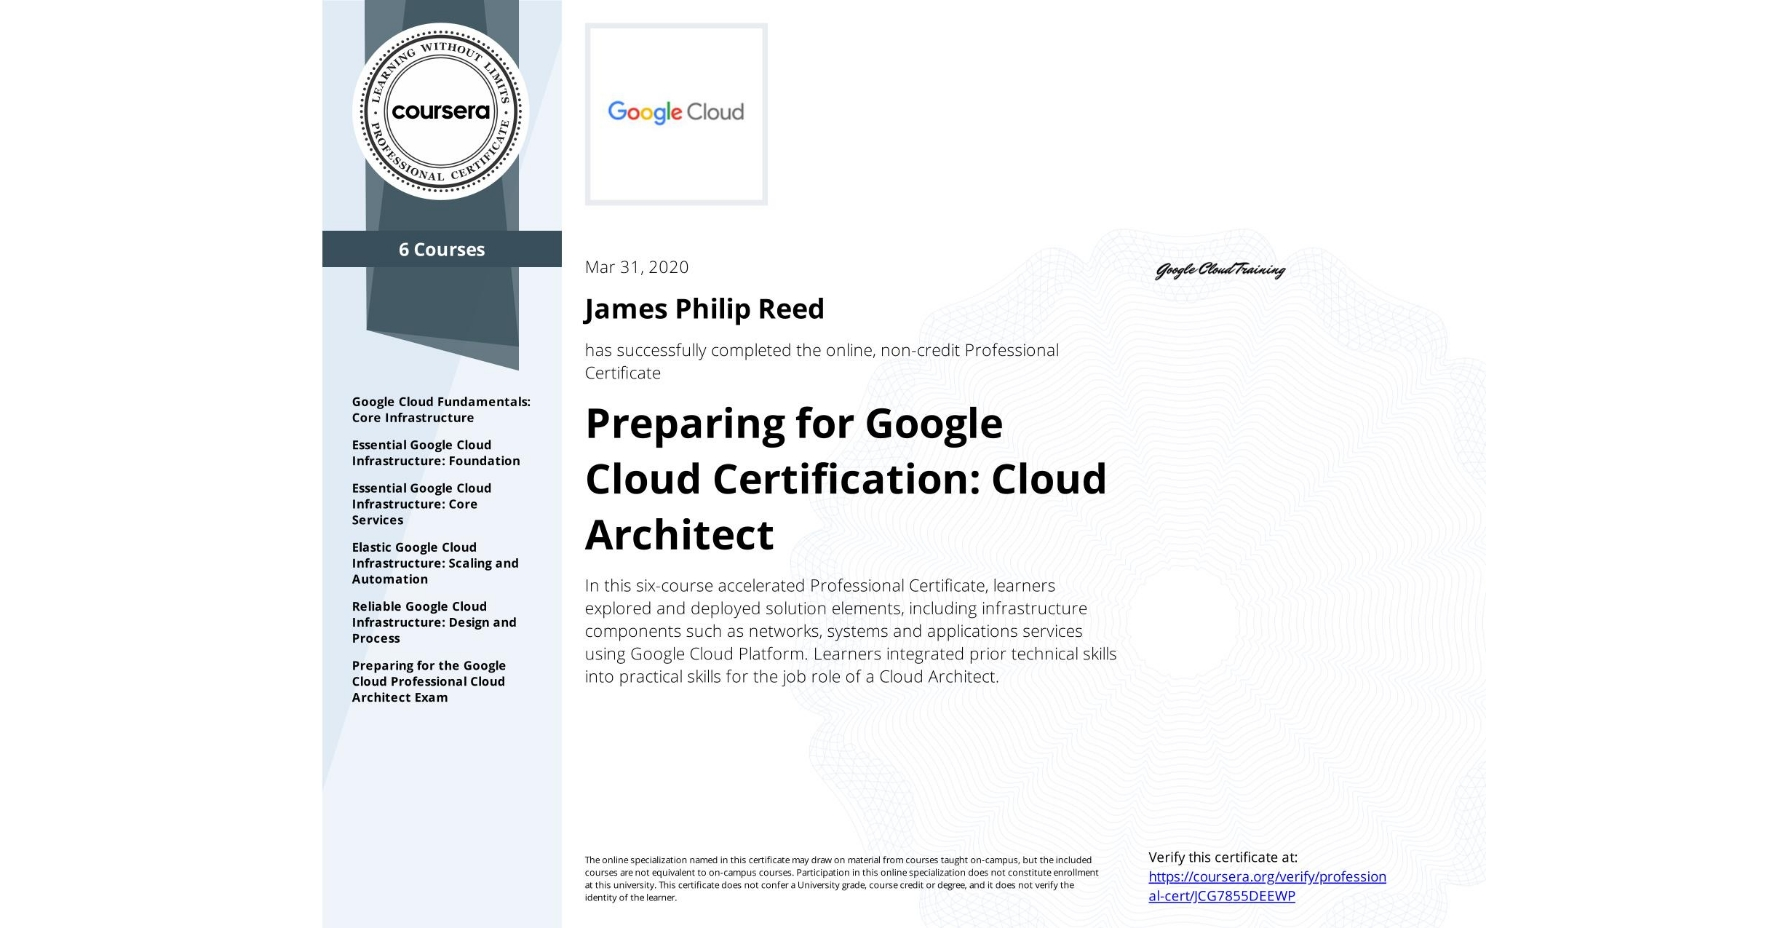 View certificate for James Philip Reed, Cloud Architecture with Google Cloud, offered through Coursera. In this six-course accelerated Professional Certificate, learners explored and deployed solution elements, including infrastructure components such as networks, systems and applications services using Google Cloud Platform. Learners integrated prior technical skills into practical skills for the job role of a Cloud Architect.